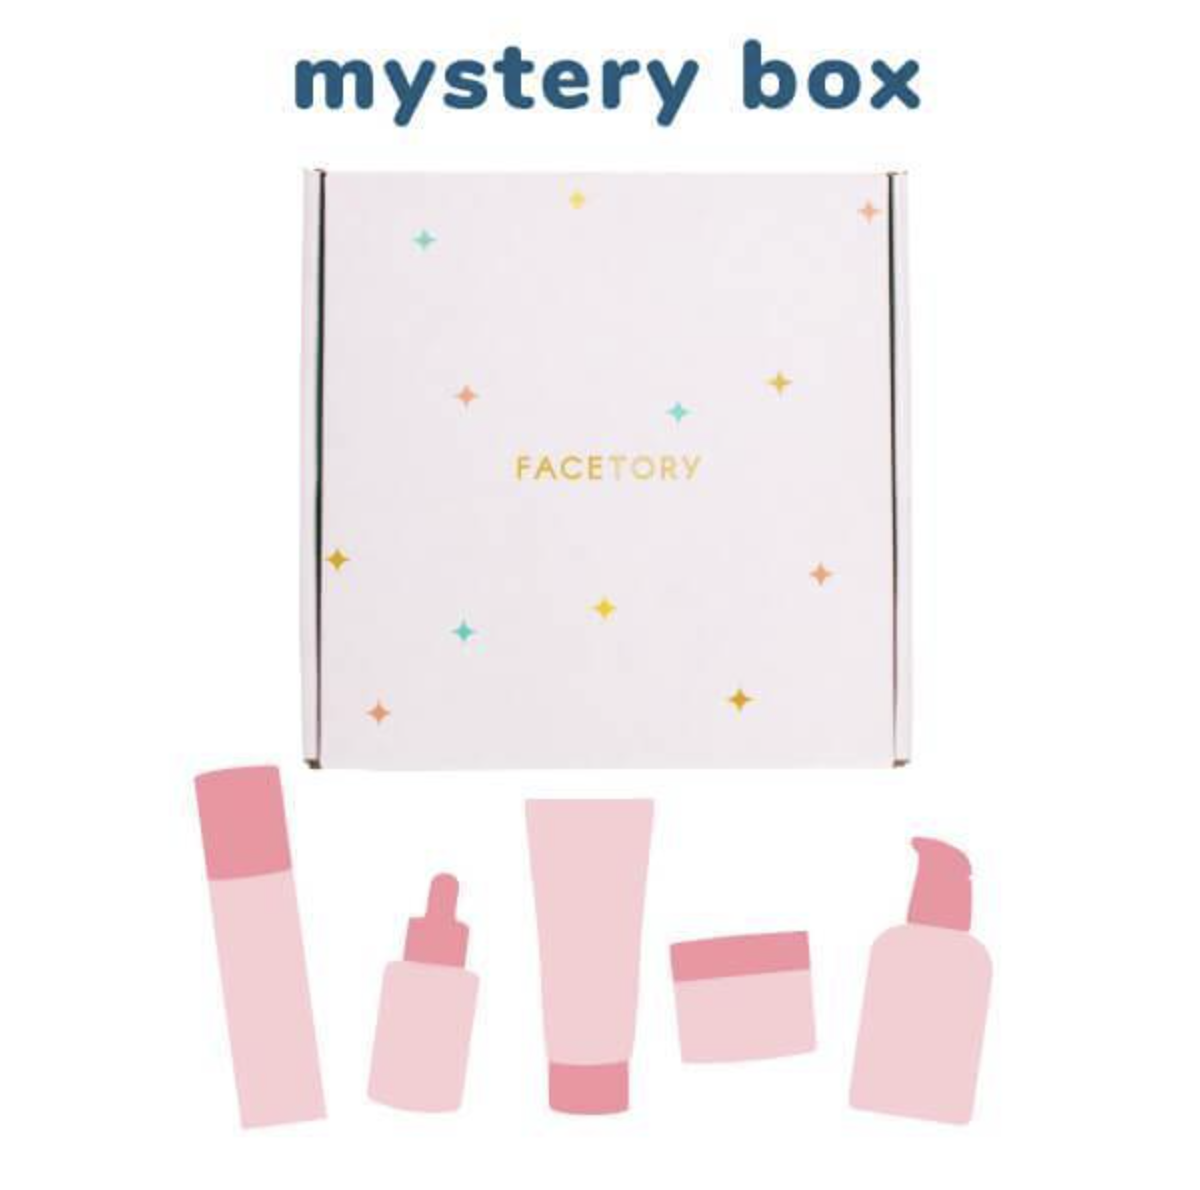 FaceTory Mystery Box – On Sale Now